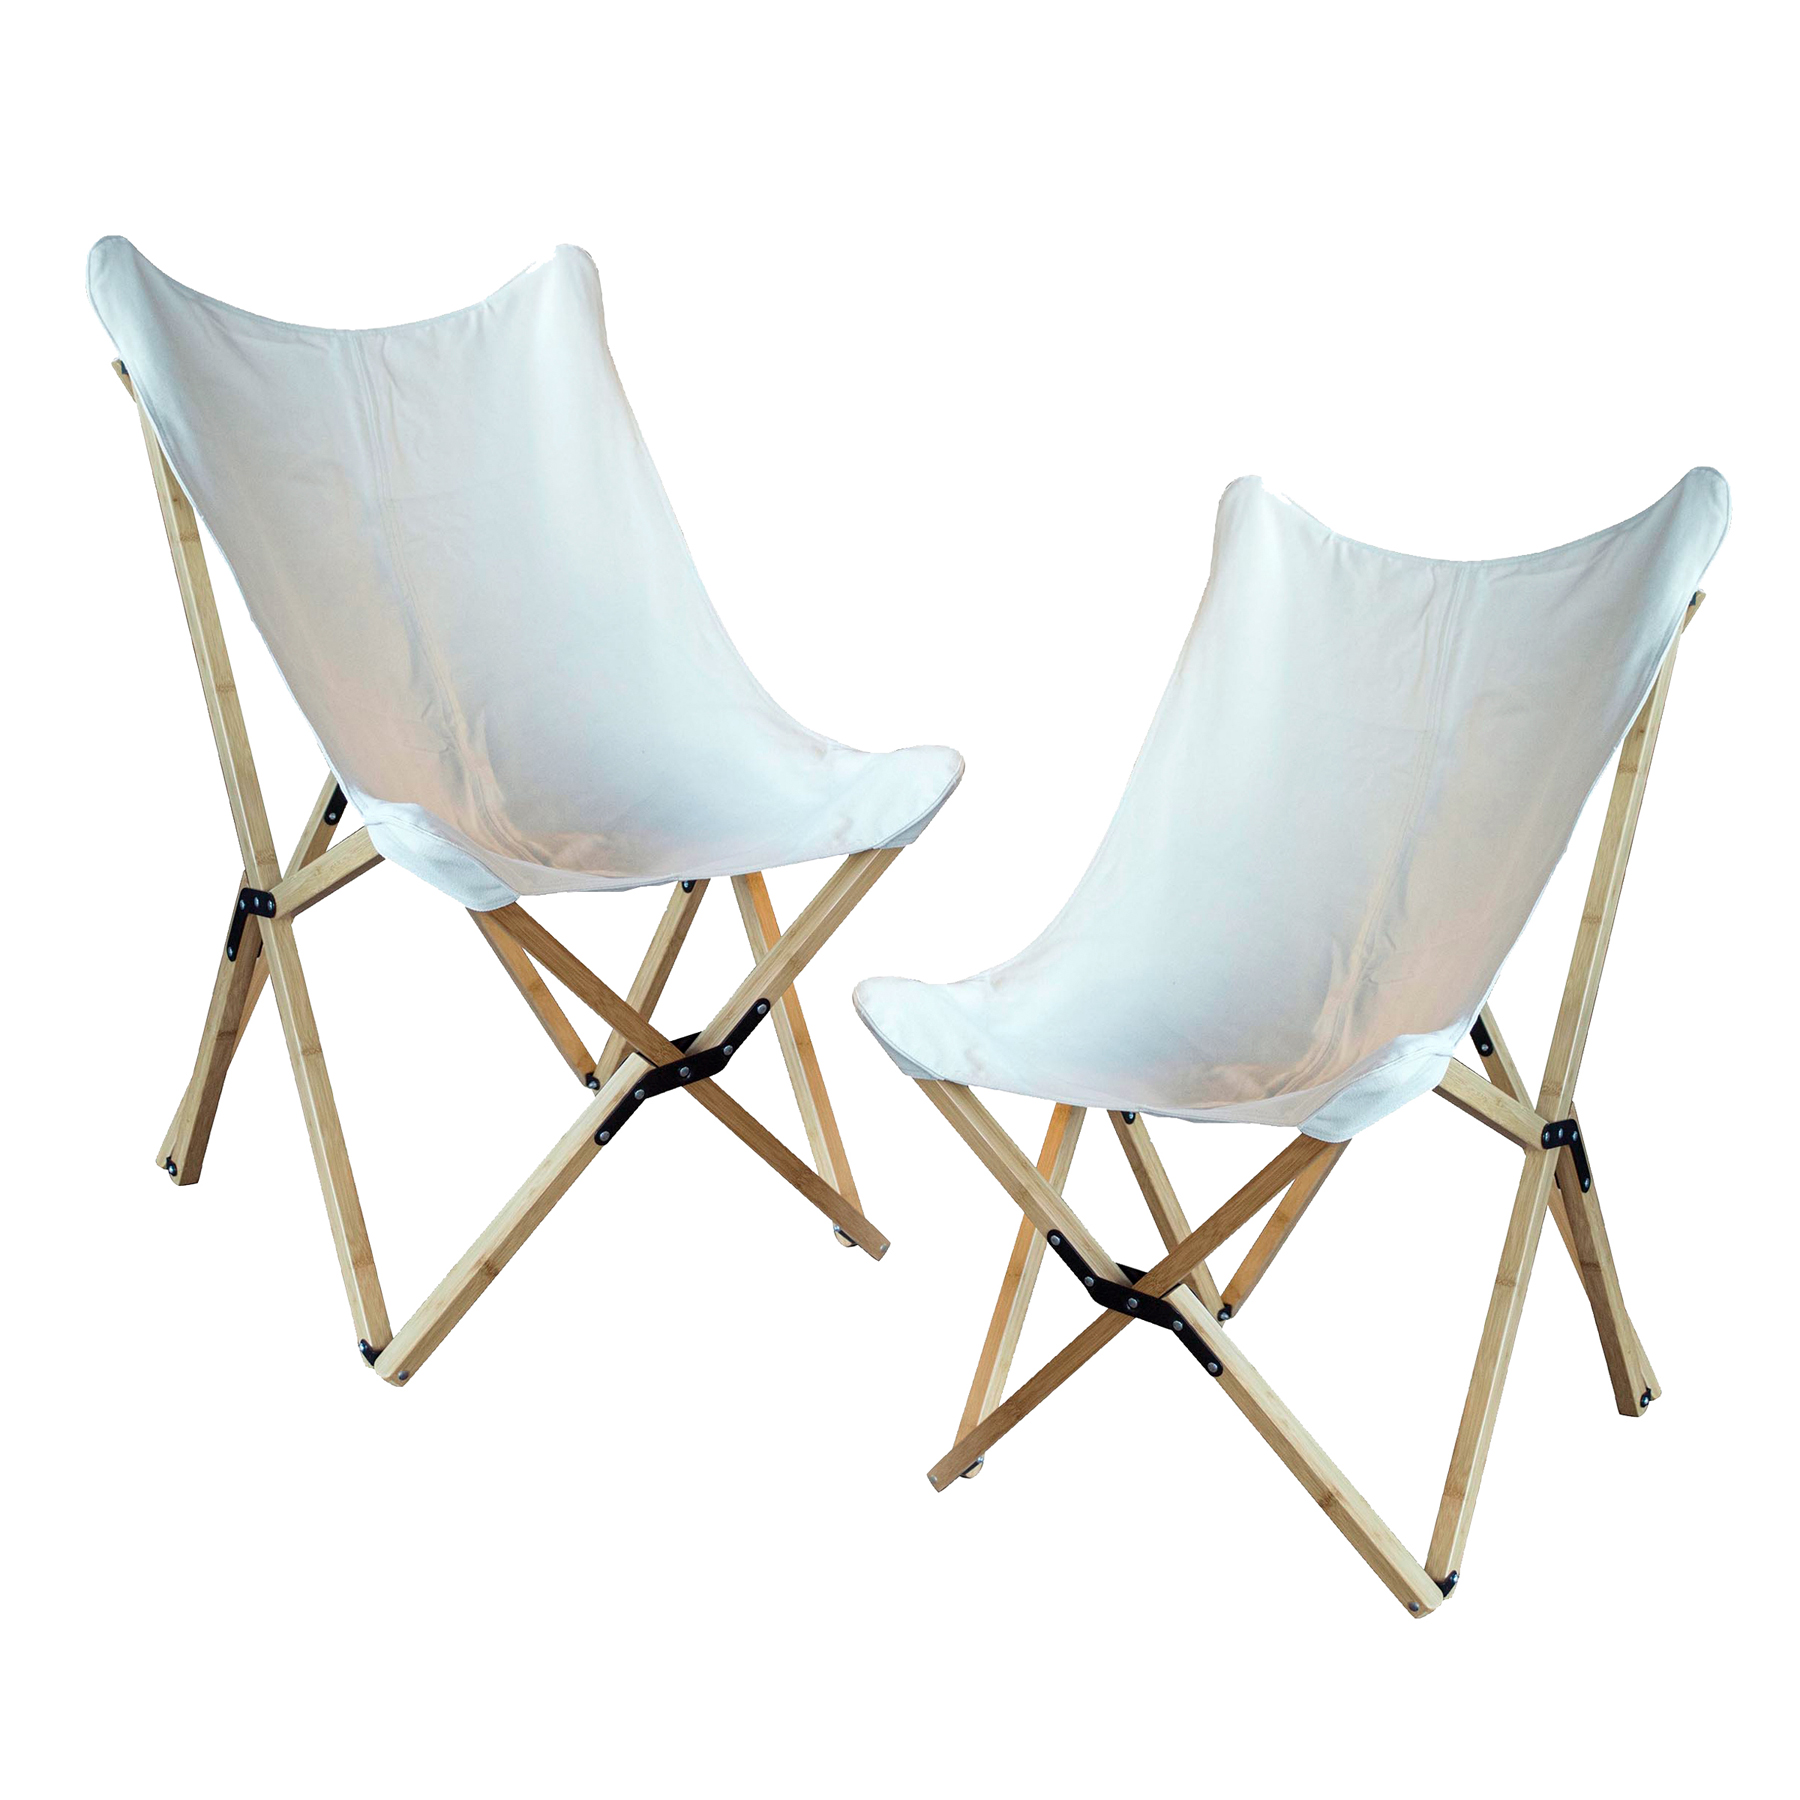 Canvas and Bamboo Butterfly Chair - White - 2 Piece Set